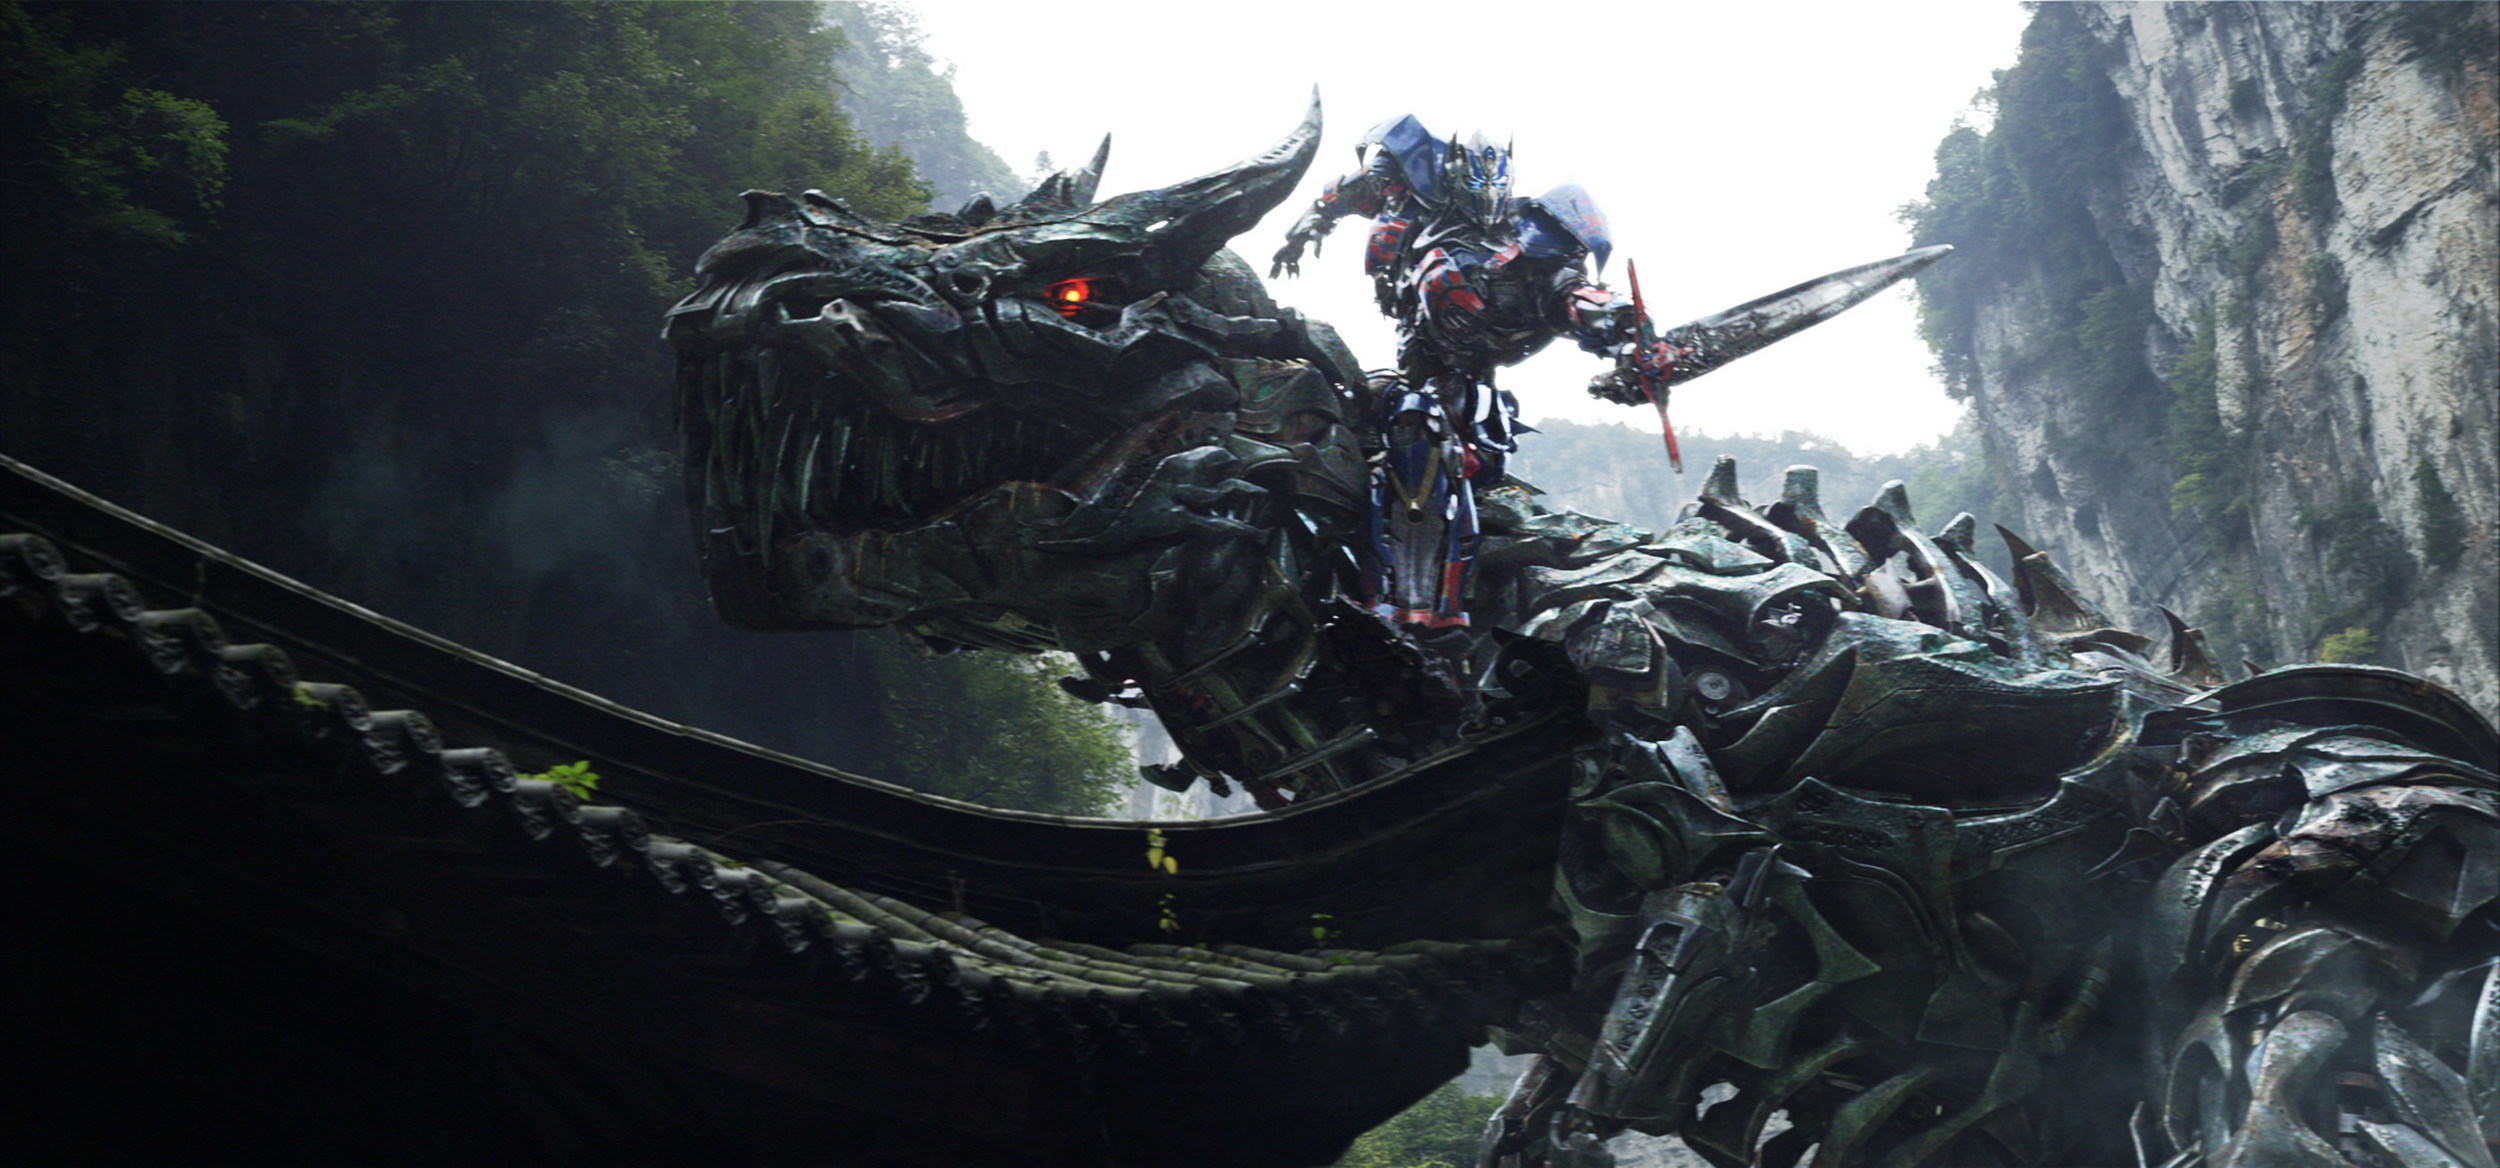 transformers-age-of-extinction-title-sequence